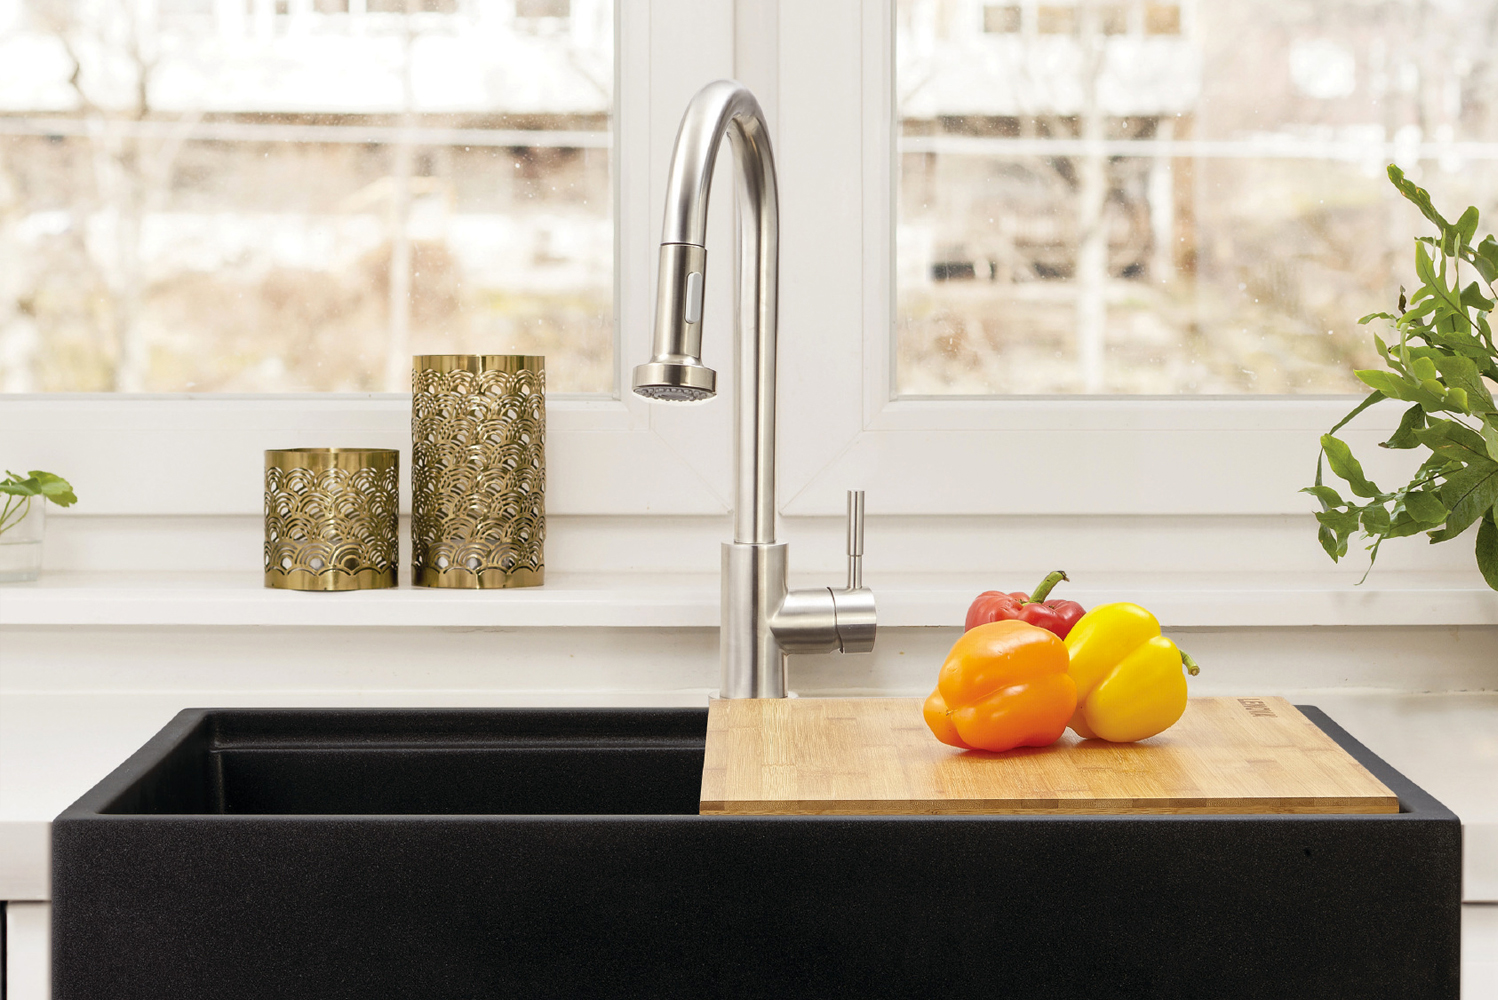 The faucets are constructed in high-quality, no-lead brass and is coated with PVD finish to withstand years of use.